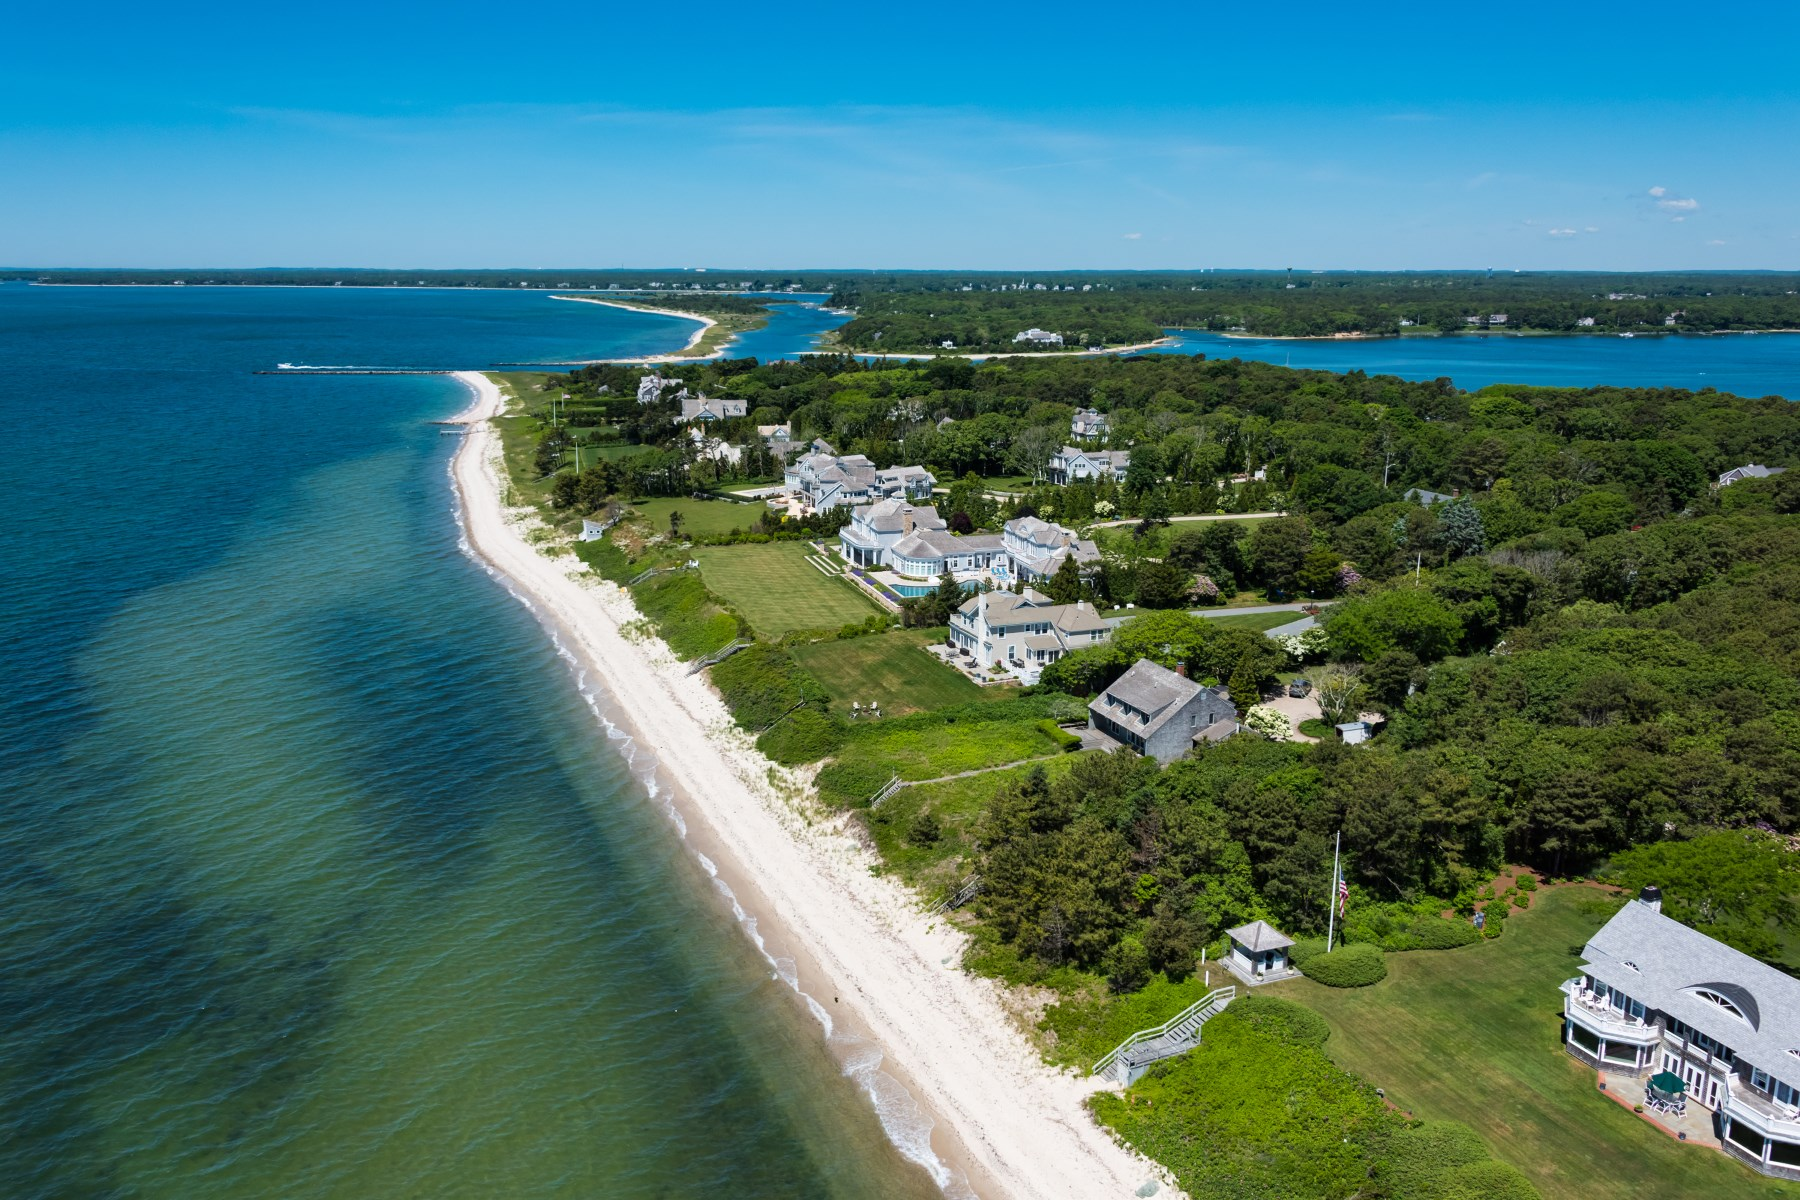 Villa per Vendita alle ore Magnificent Sea View Avenue Estate 807 Sea View Ave Osterville, Massachusetts, 02655 Stati Uniti